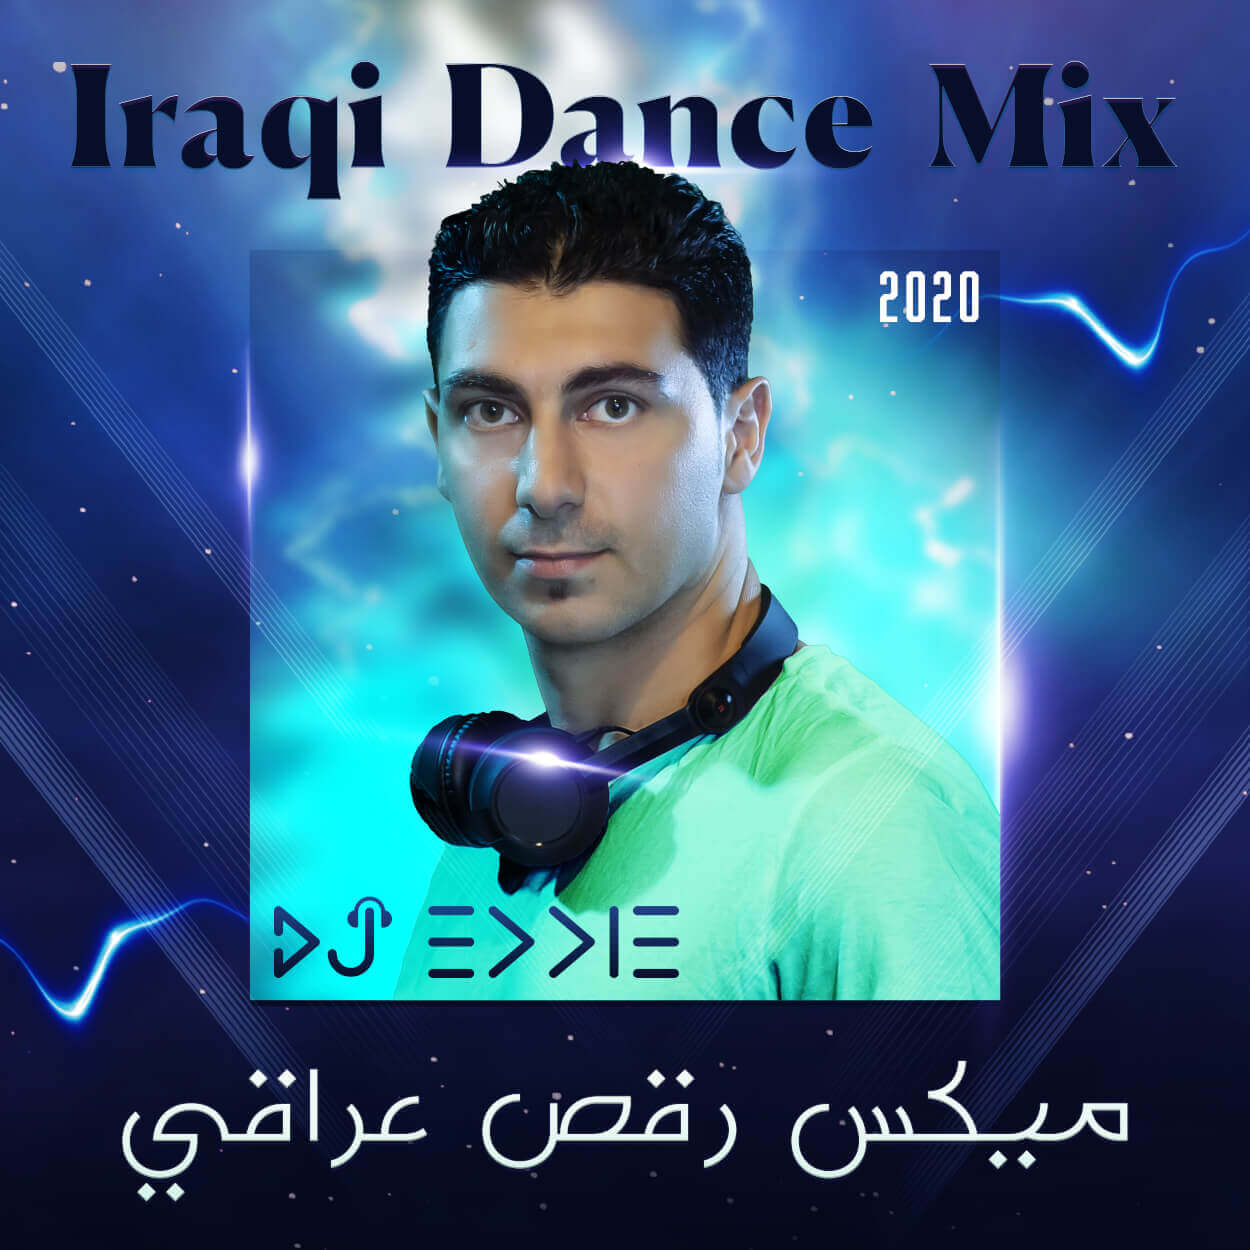 Iraqi Party Dance Mix 2021 New Year Mix DJ Eddie اجمل ميكس رقص عراقي